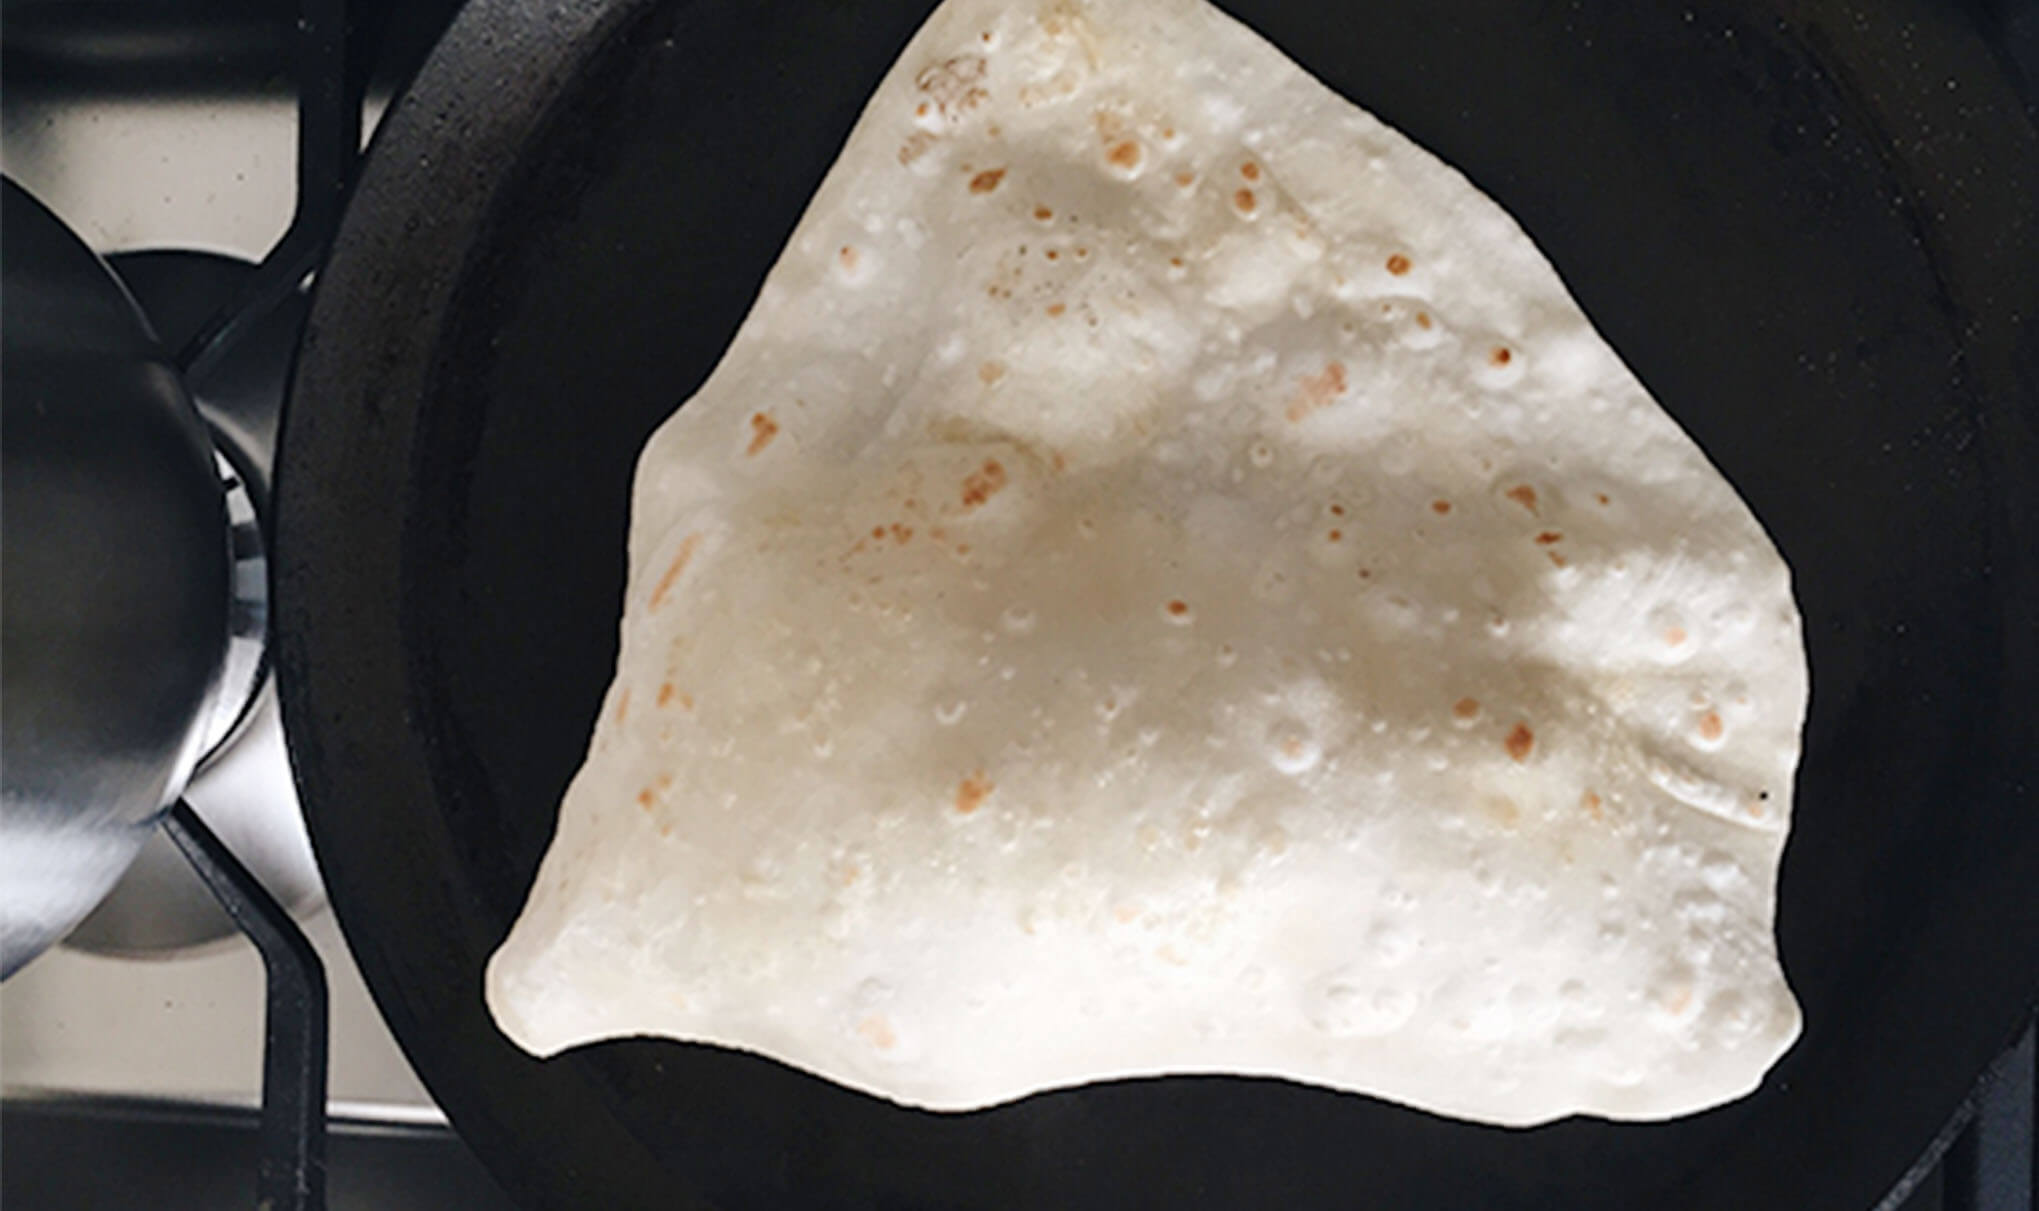 Chapati made from wholewheat flour cooking on a dark flat pan